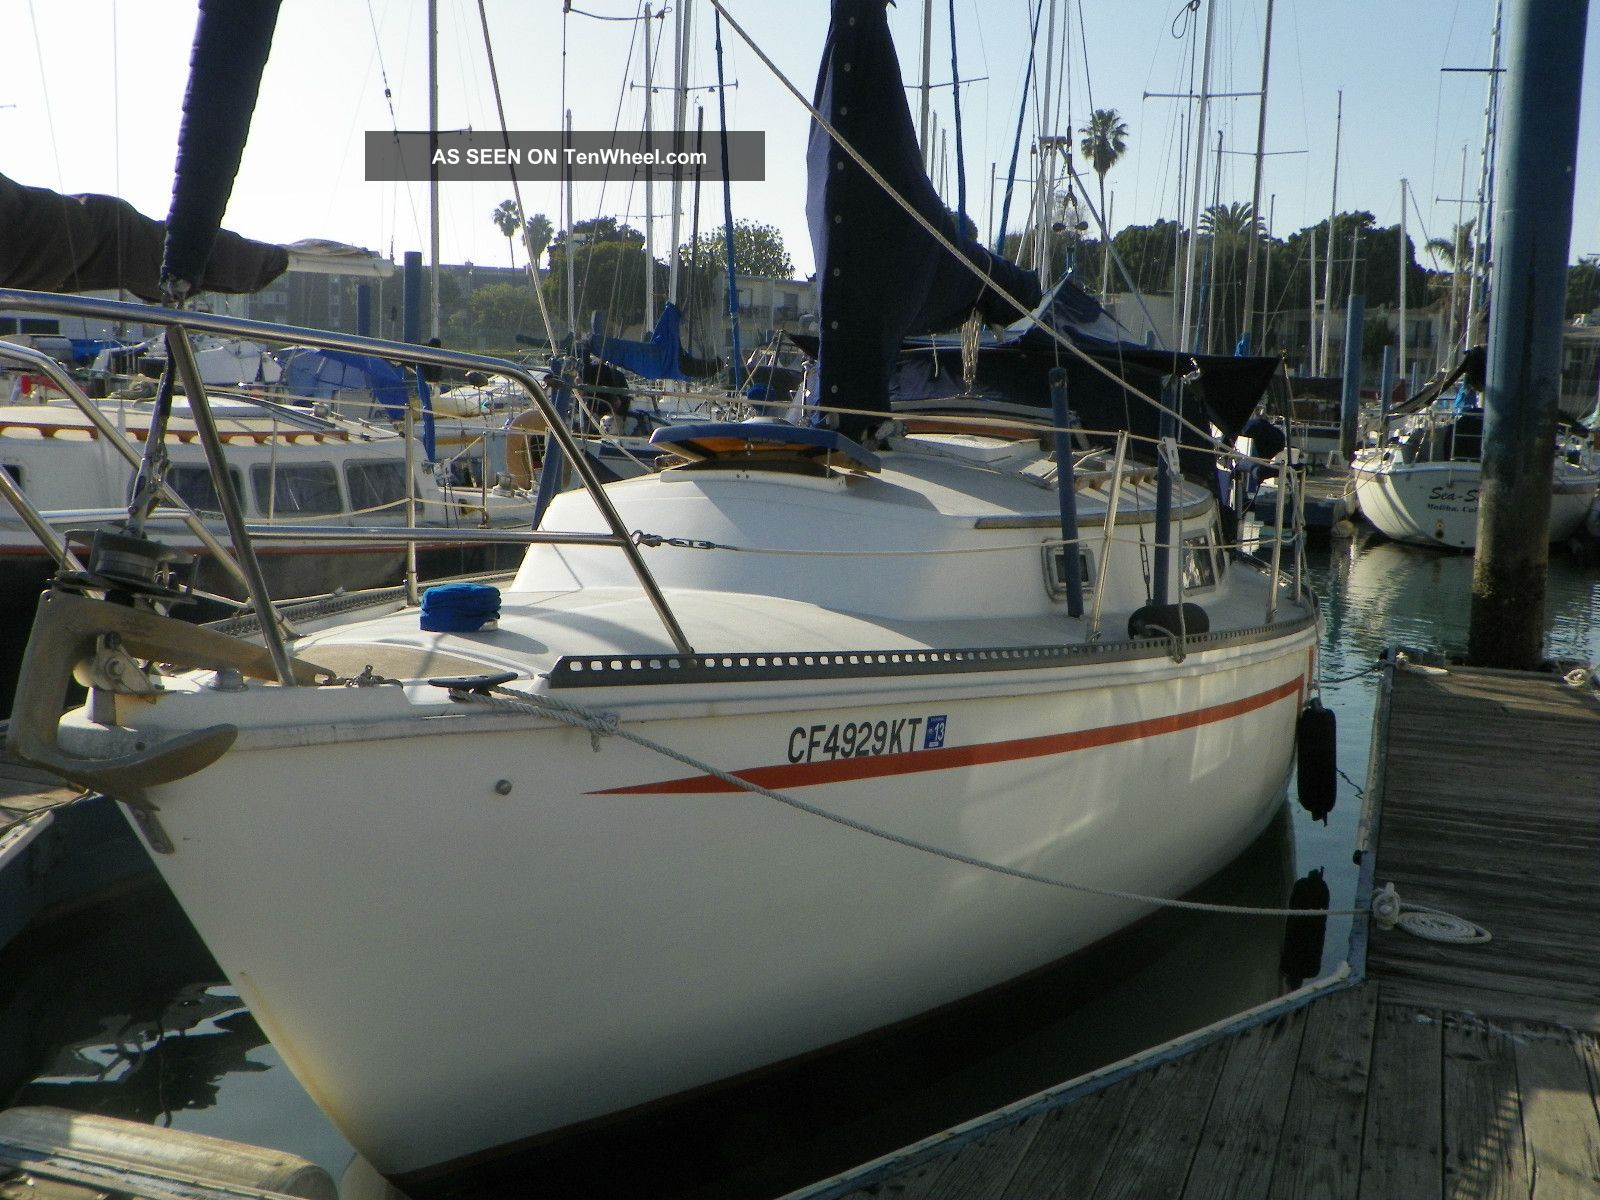 1980 Newport Phase 2 Sailboats 28+ feet photo